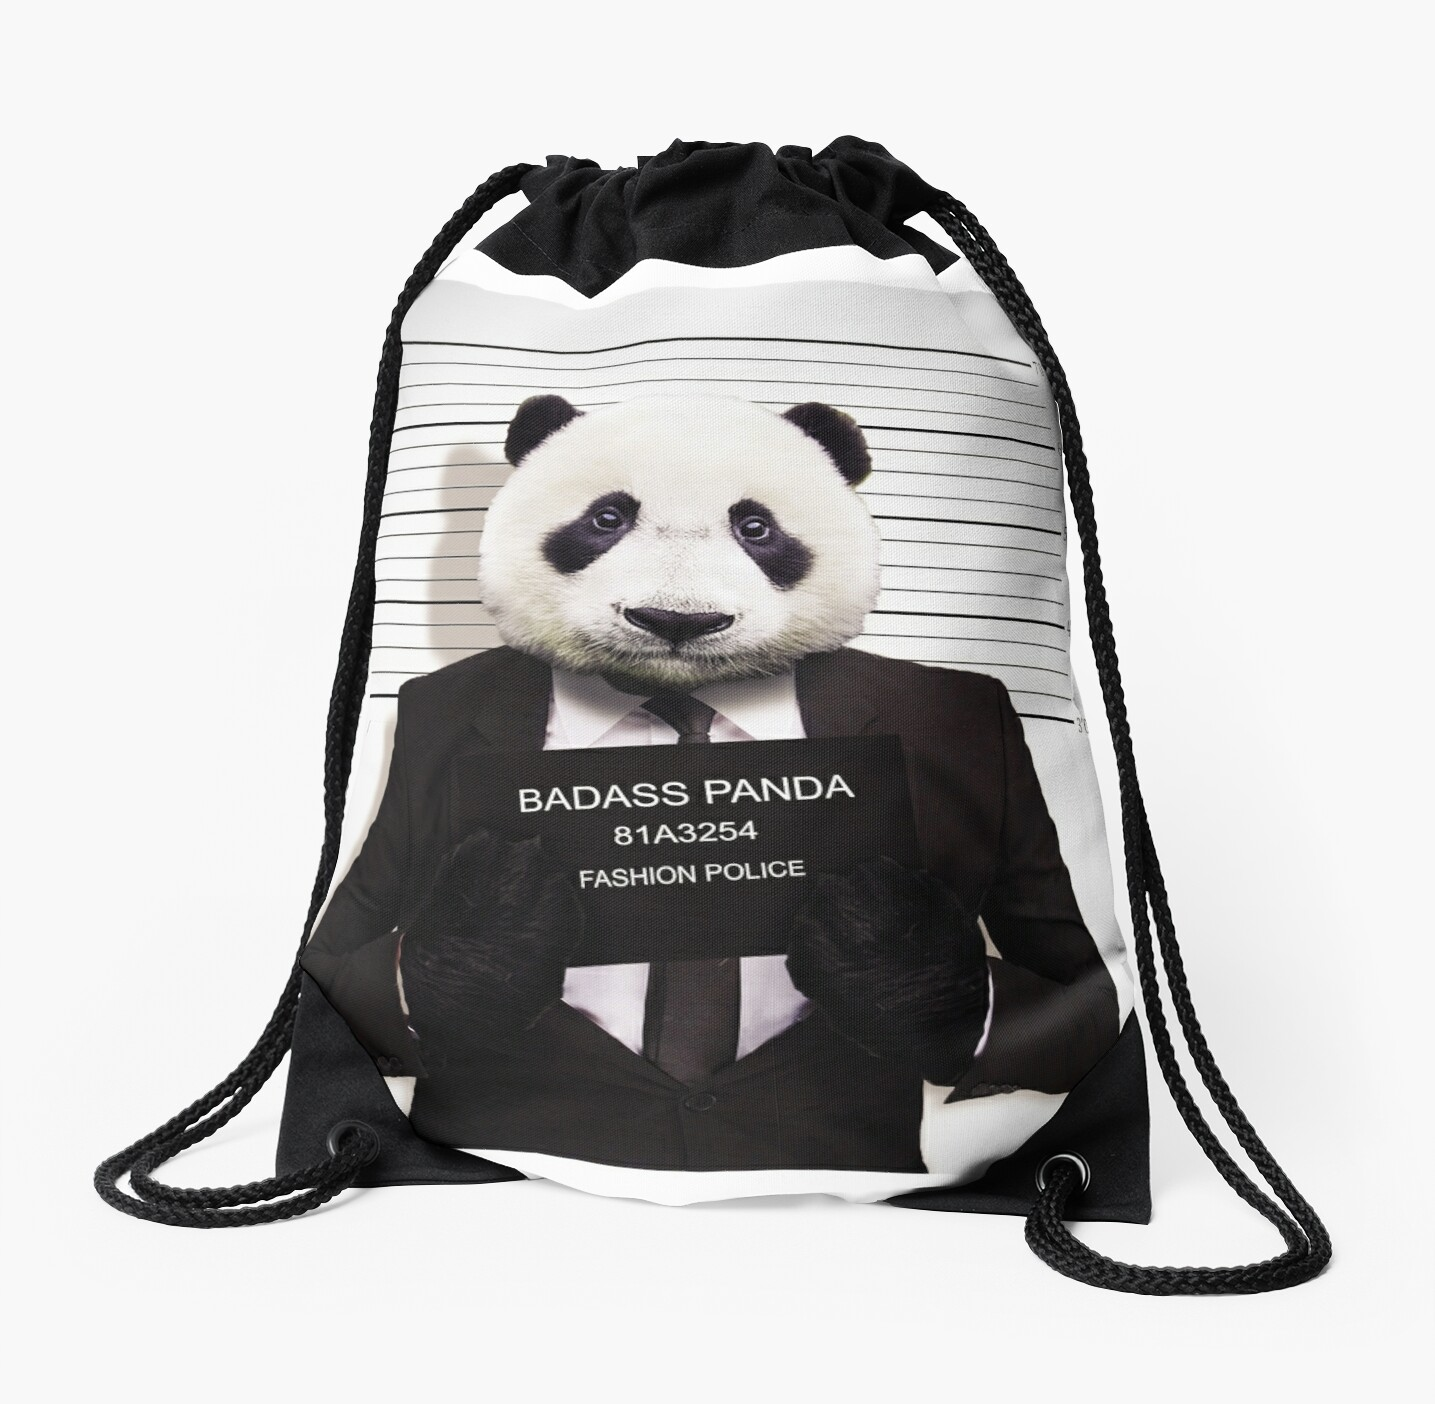 Quot Funny Badass Panda Quot Drawstring Bags By Rott515 Redbubble